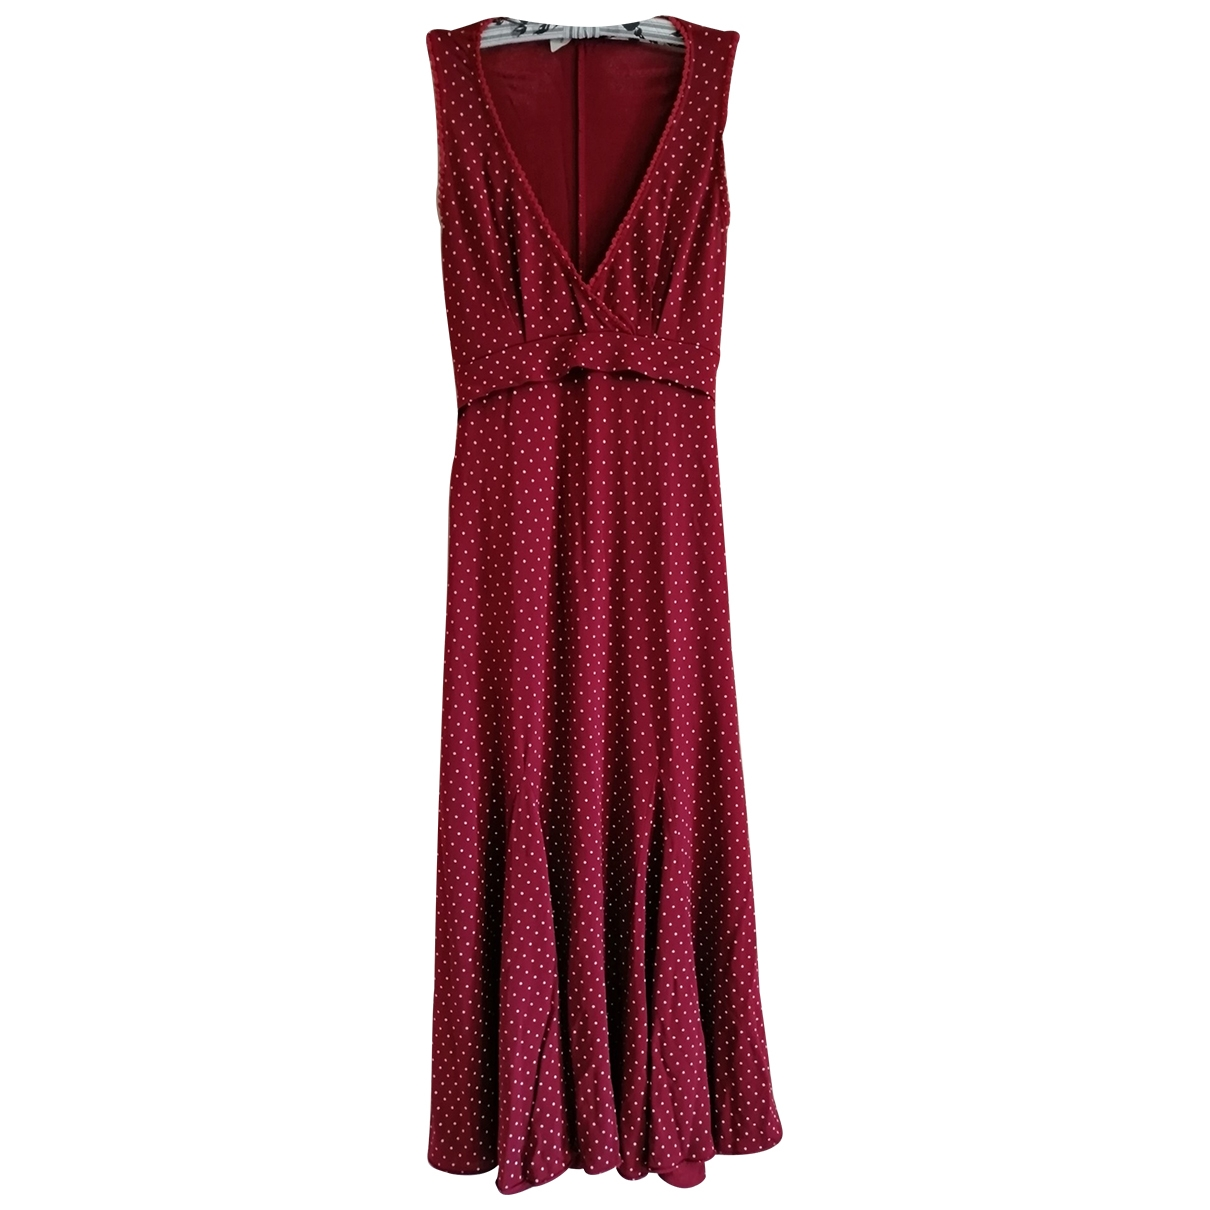 Non Signé / Unsigned \N Cotton - elasthane dress for Women M International